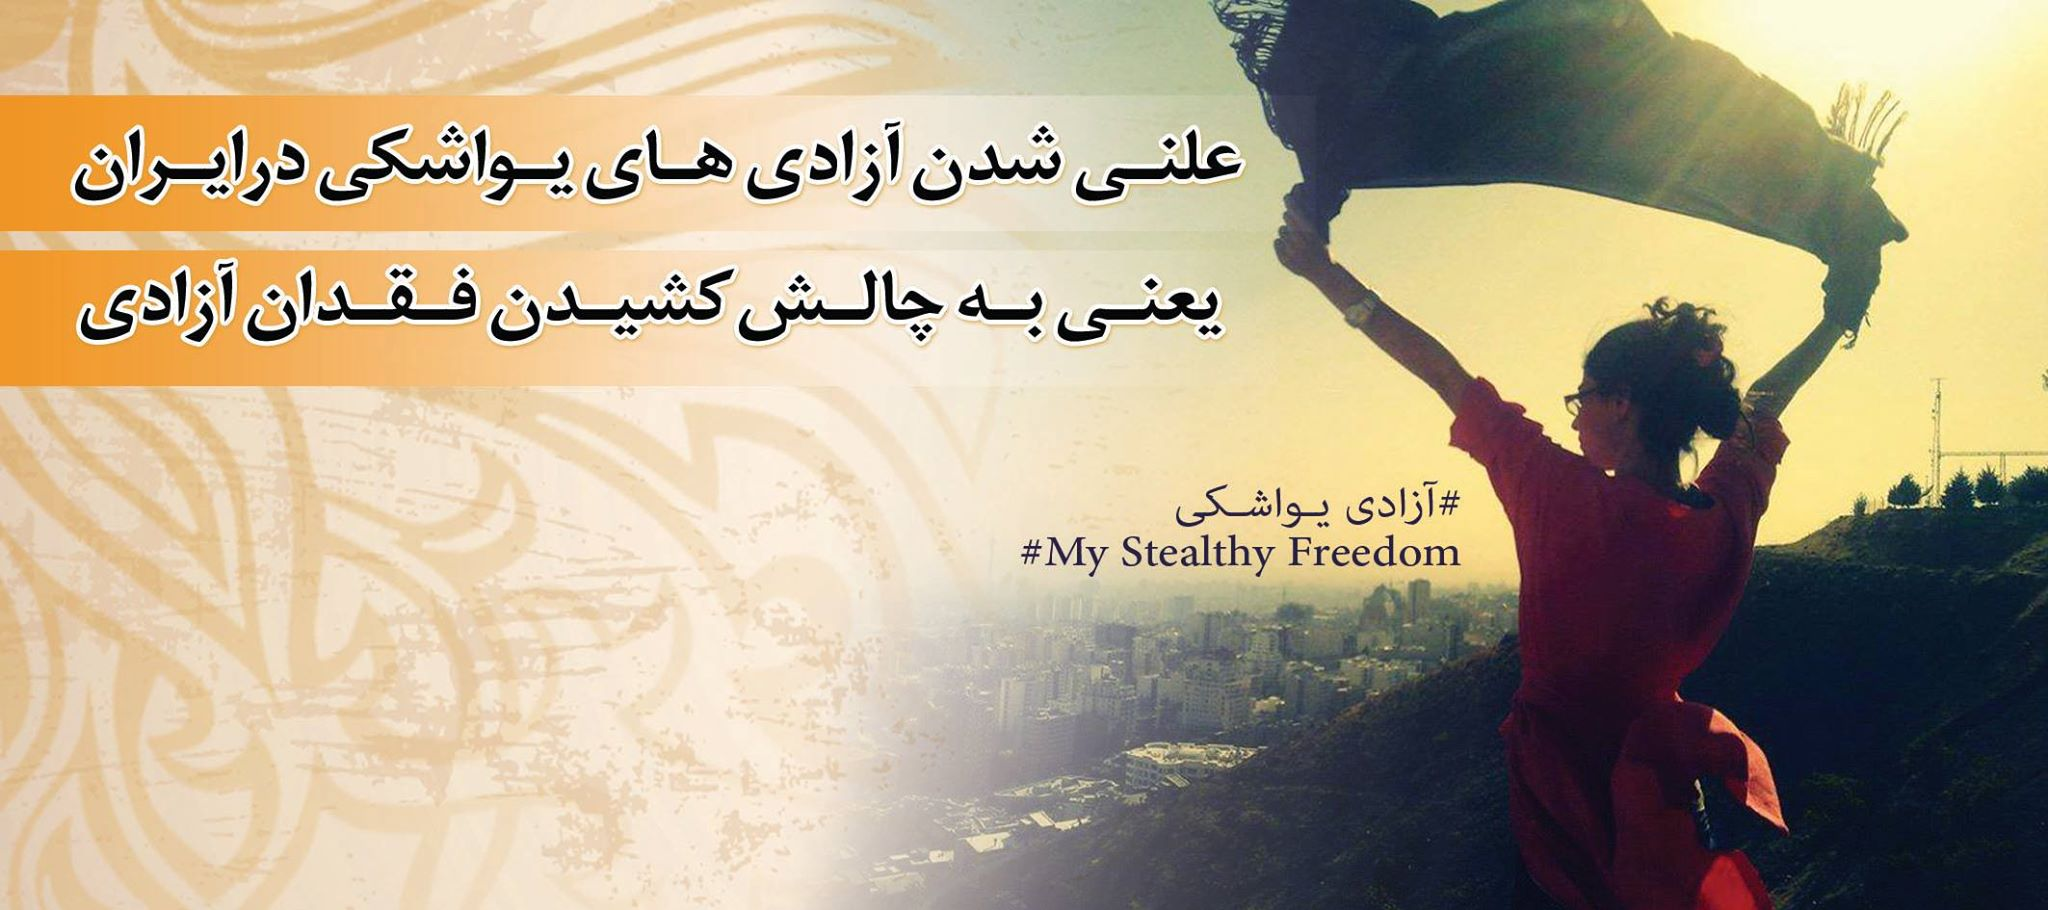 "The cover photo from Masih Alinejad's Facebook page ""My Stealthy Freedom"""